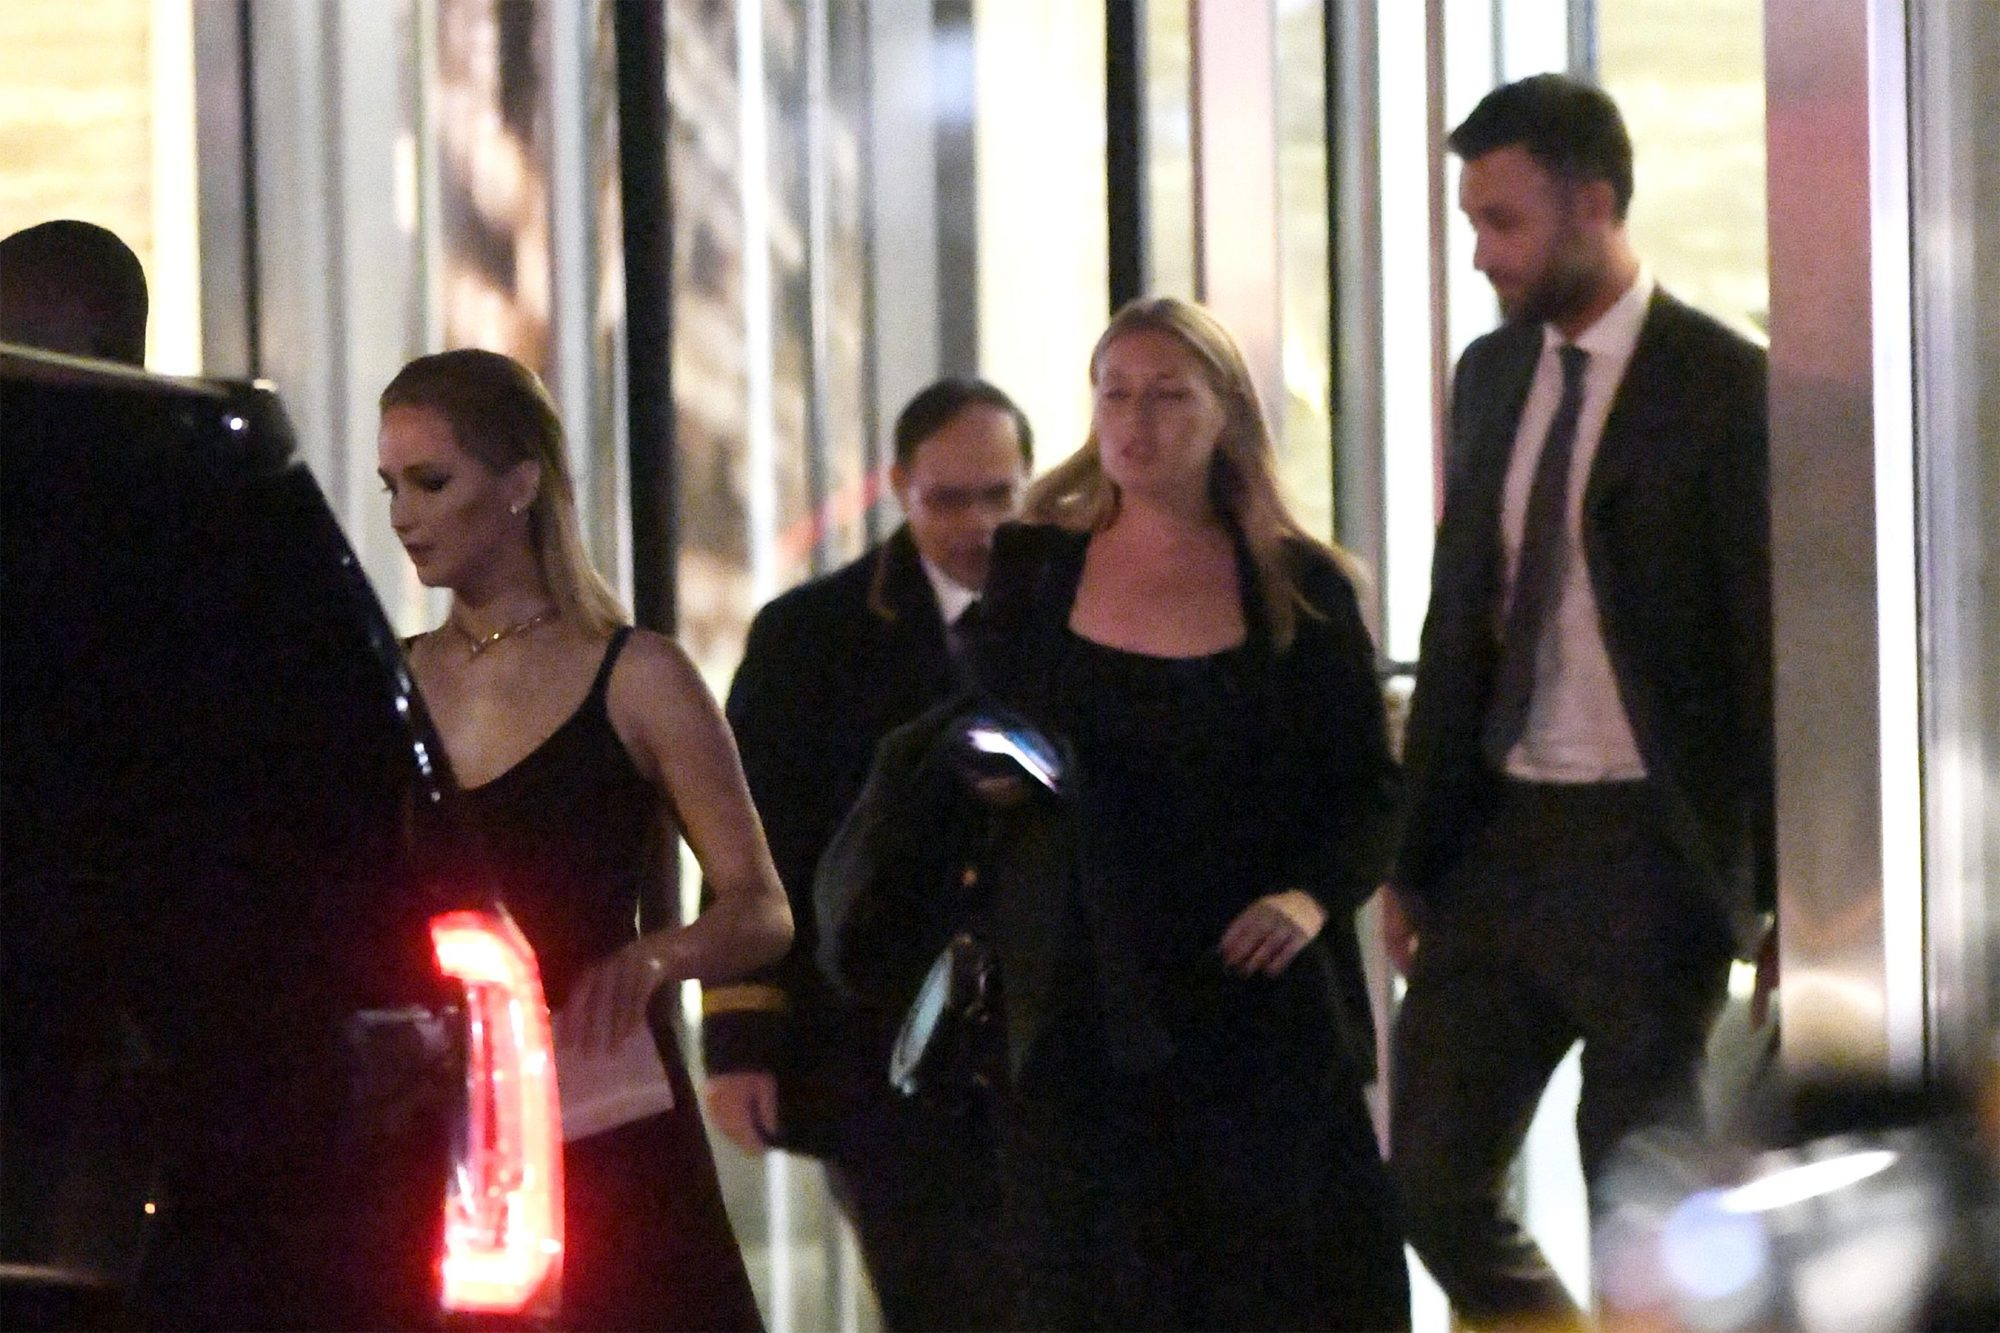 Jennifer Lawrence photographed leaving her apartment tonight with her boyfriend Cooke on their way to an event